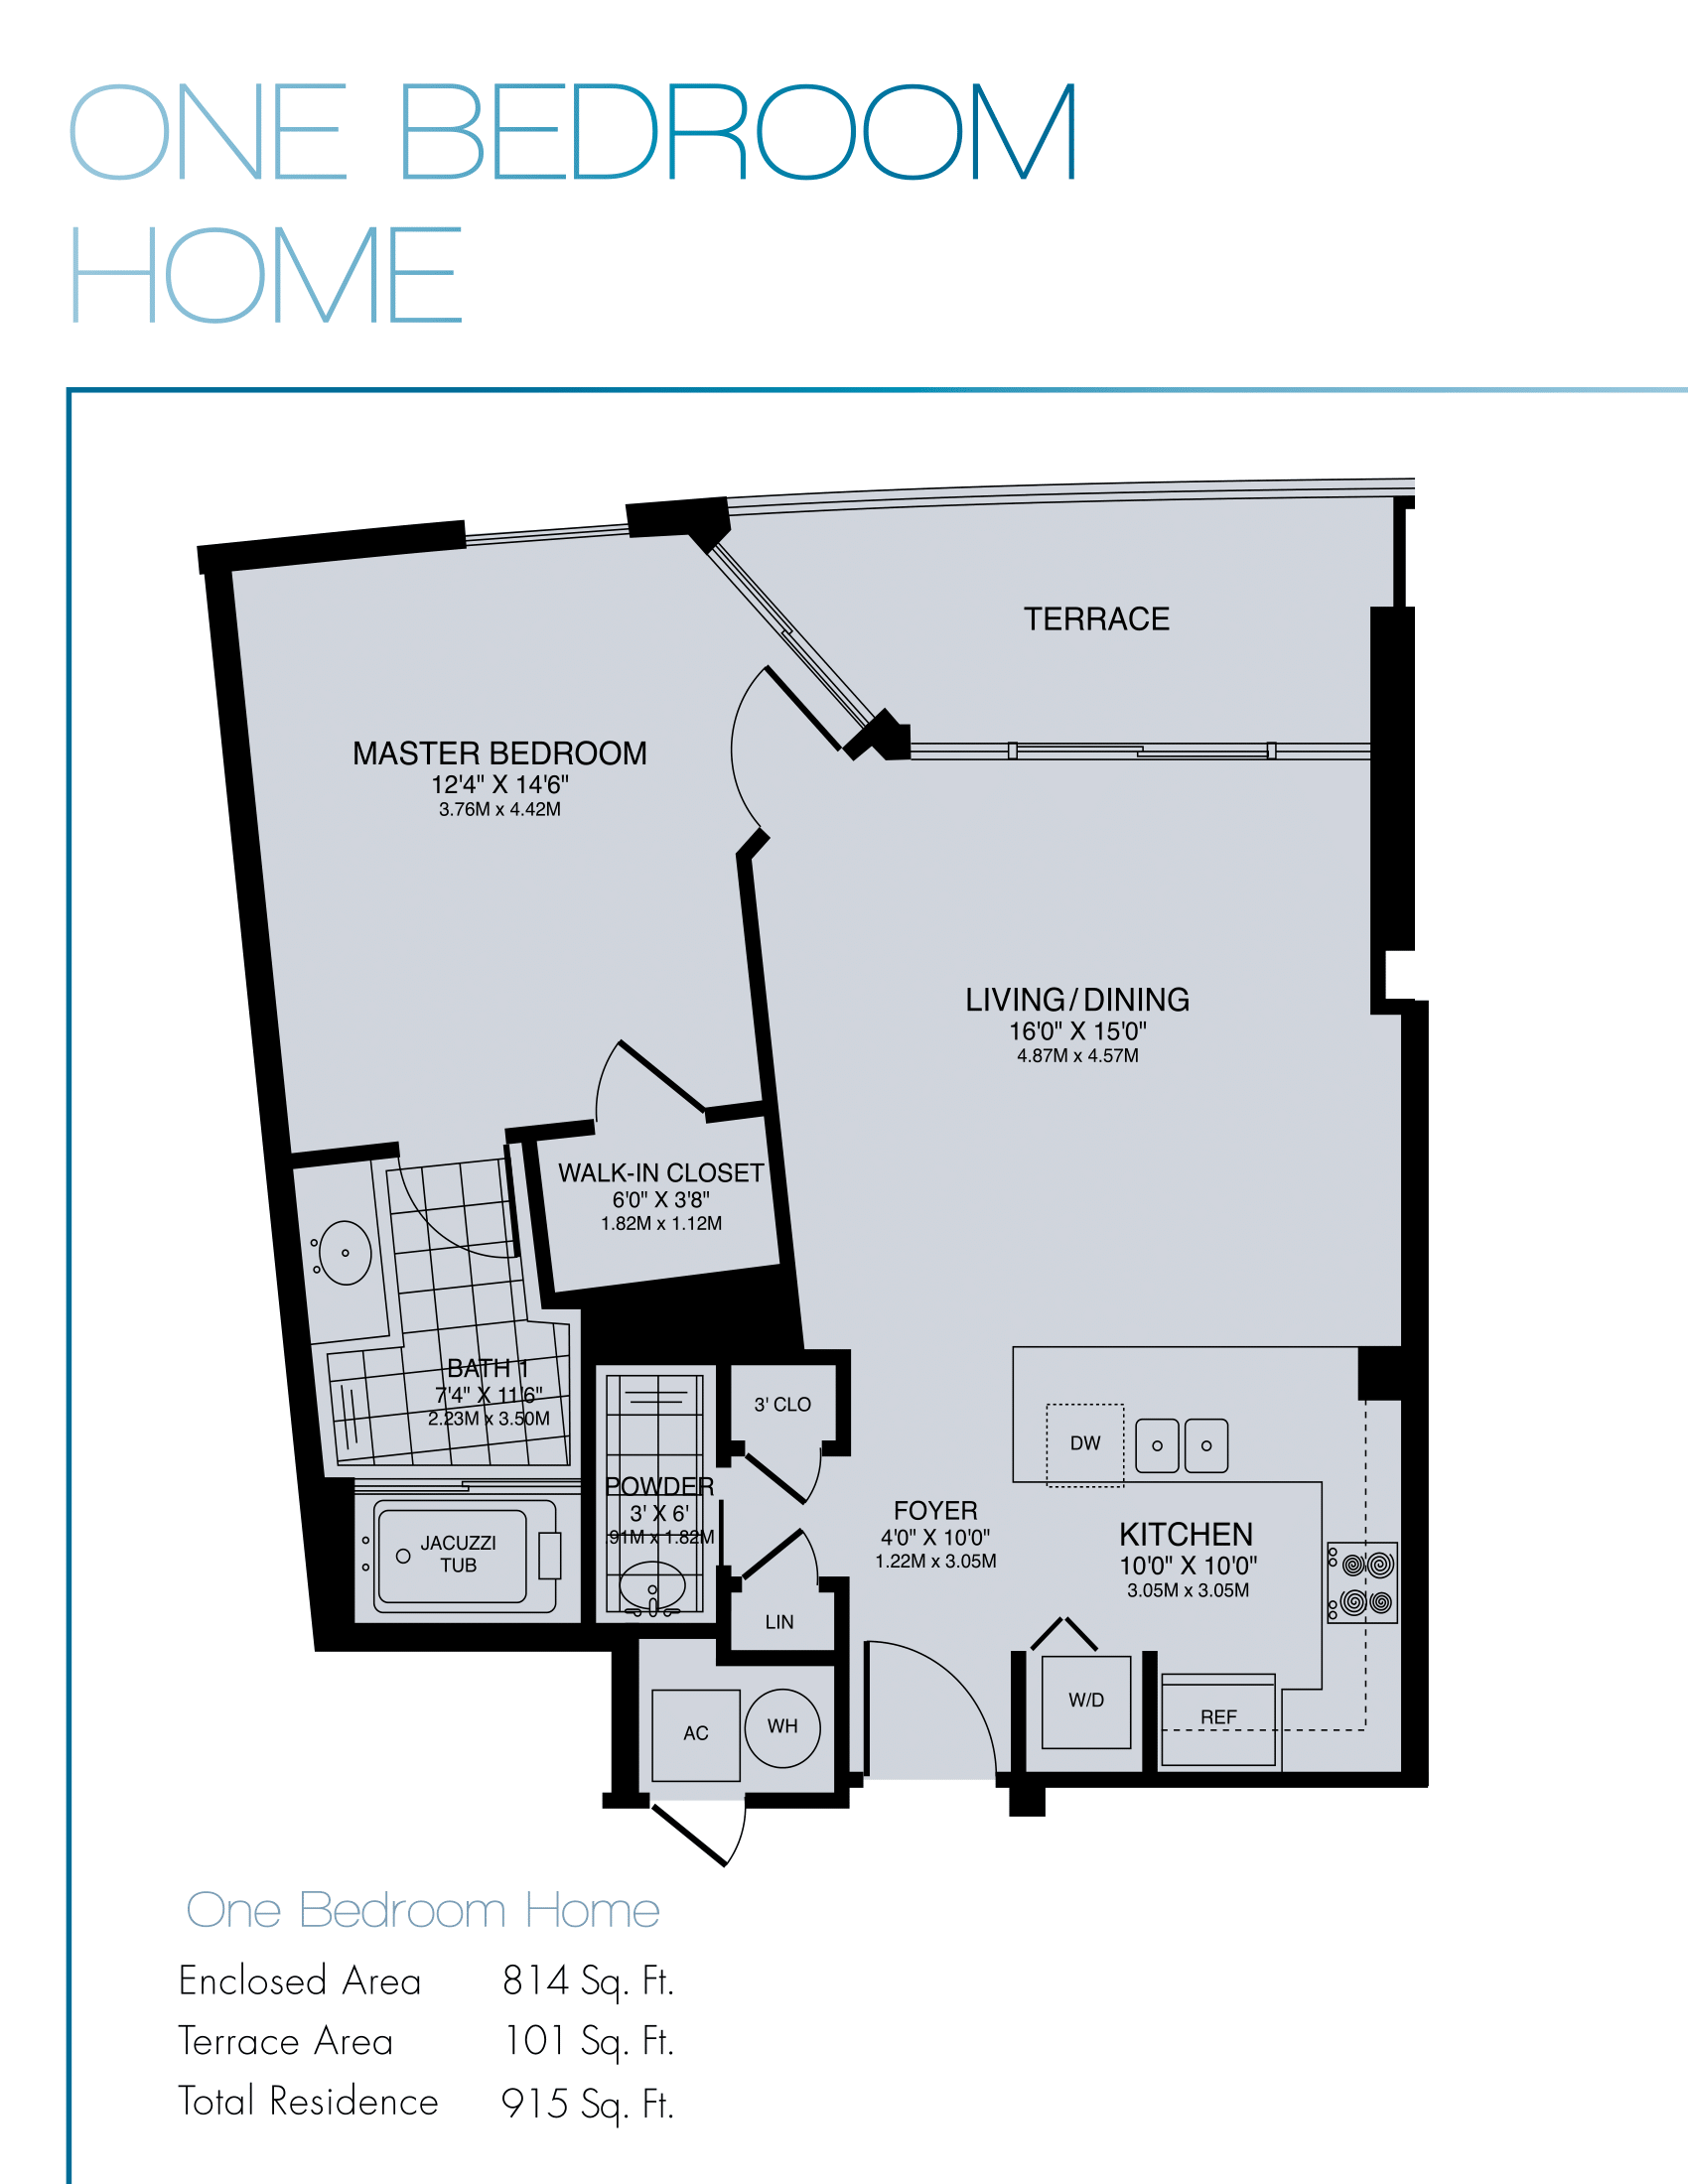 Turnberry Towers Las Vegas - Condos For Sale and Rent